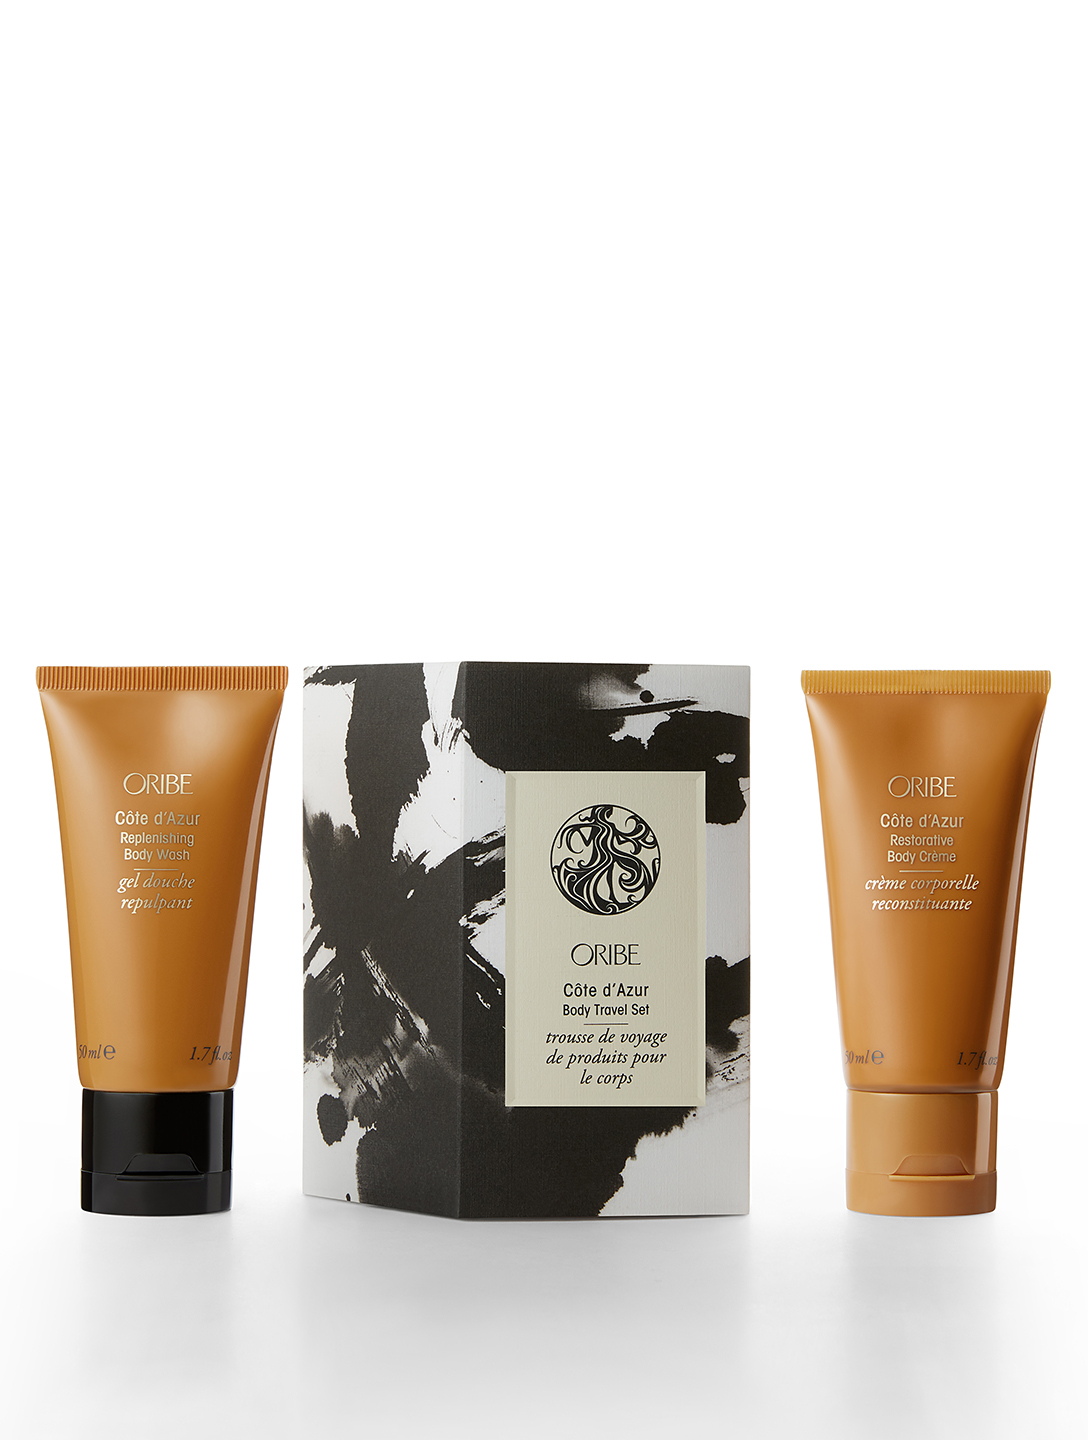 ORIBE Côte d'Azur Body Travel Set - Holiday Edition Beauty